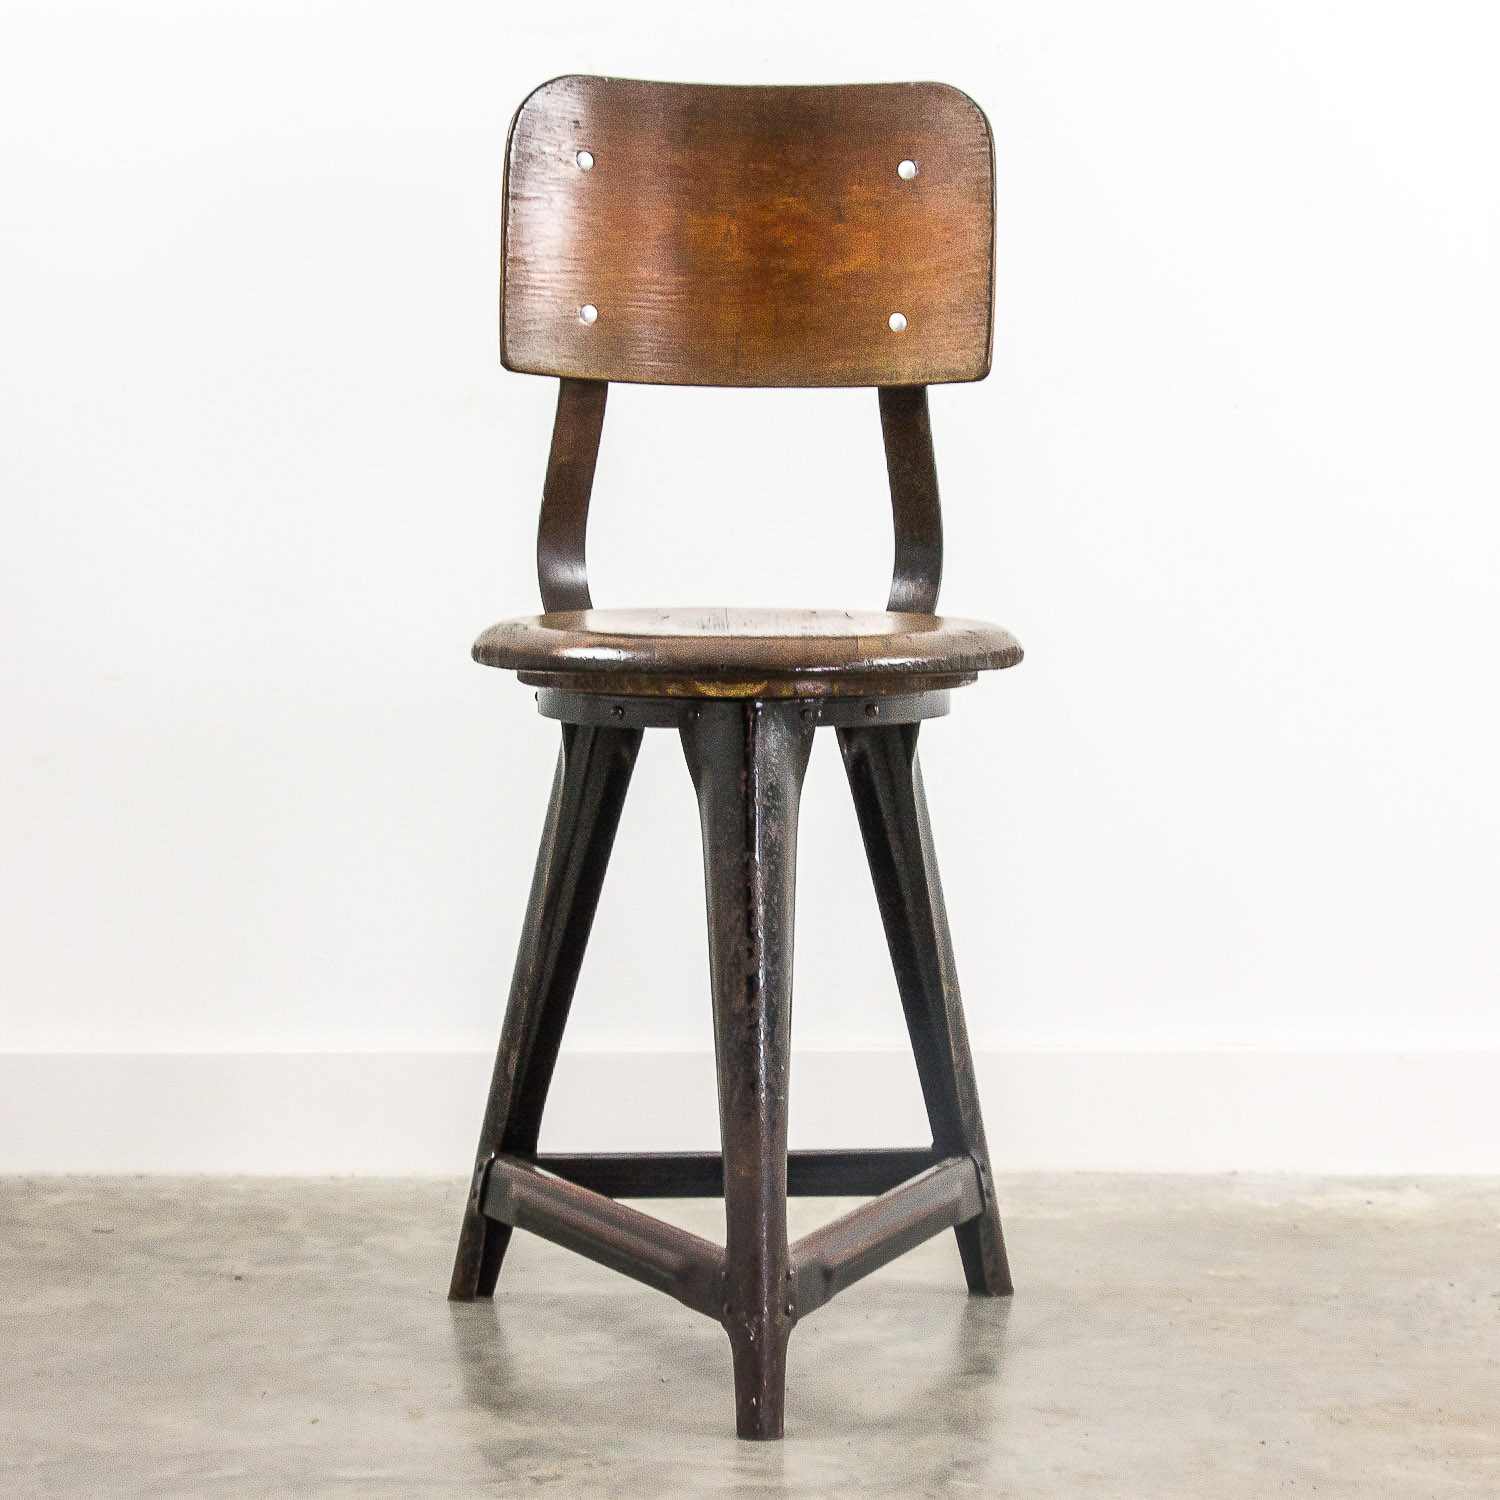 Rowac style industrial chair